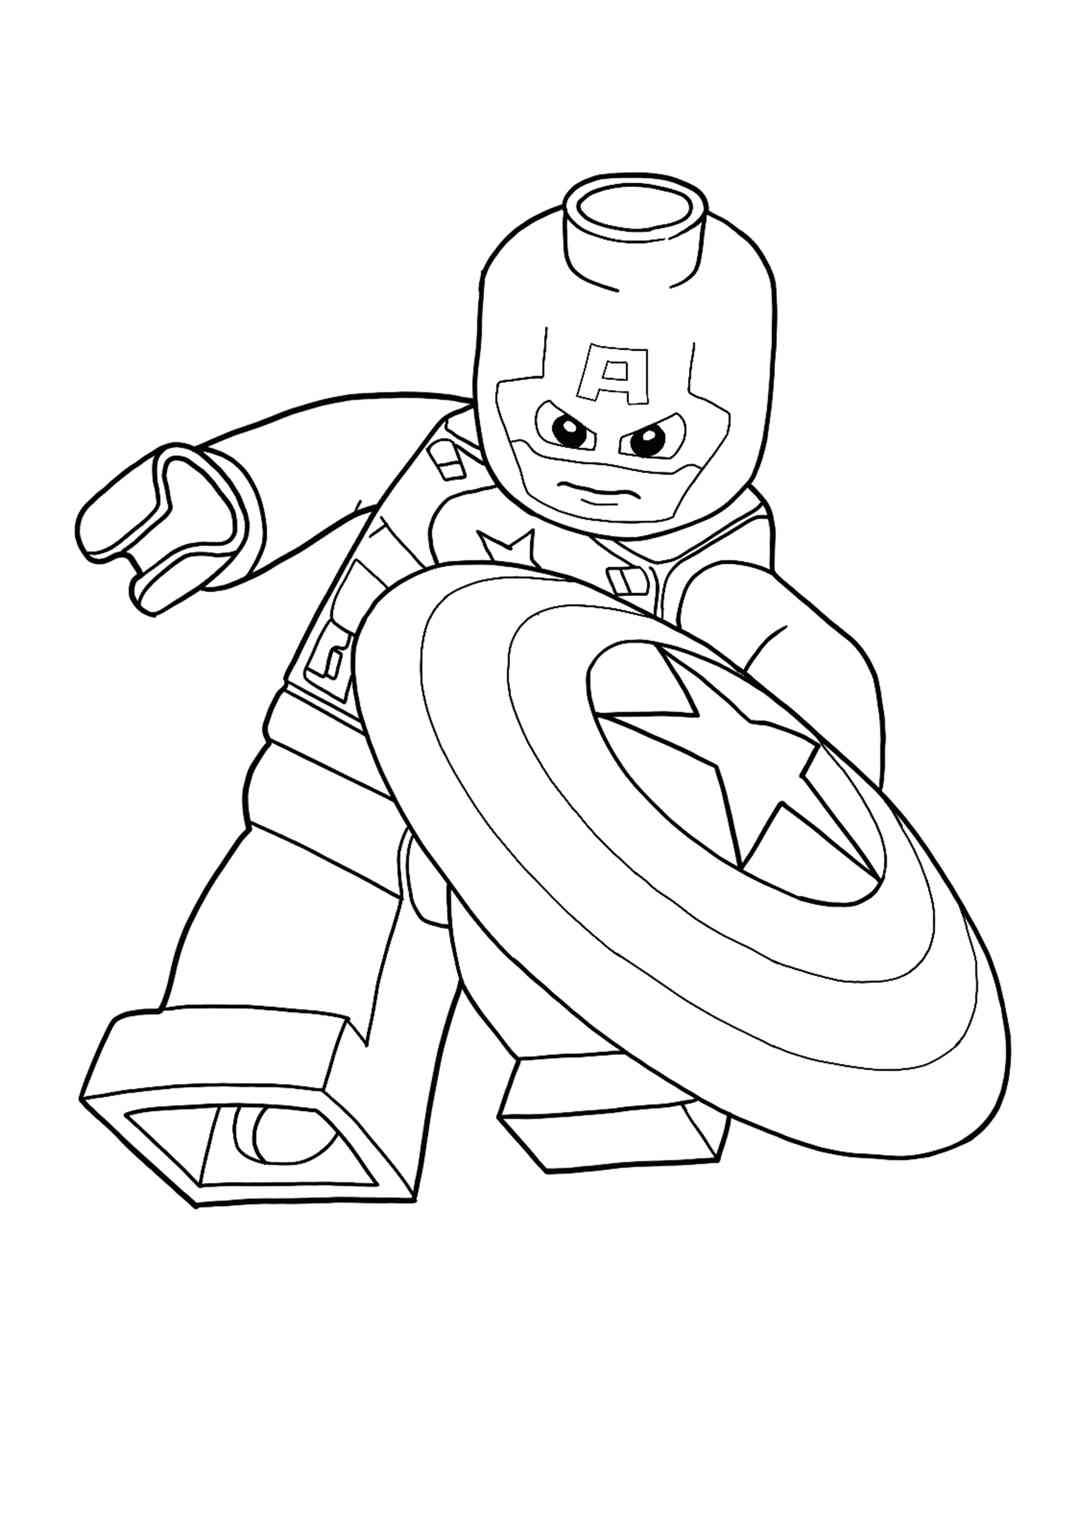 Lego Captain America Coloring Page Captain America Coloring Pages Avengers Coloring Pages Lego Coloring Pages